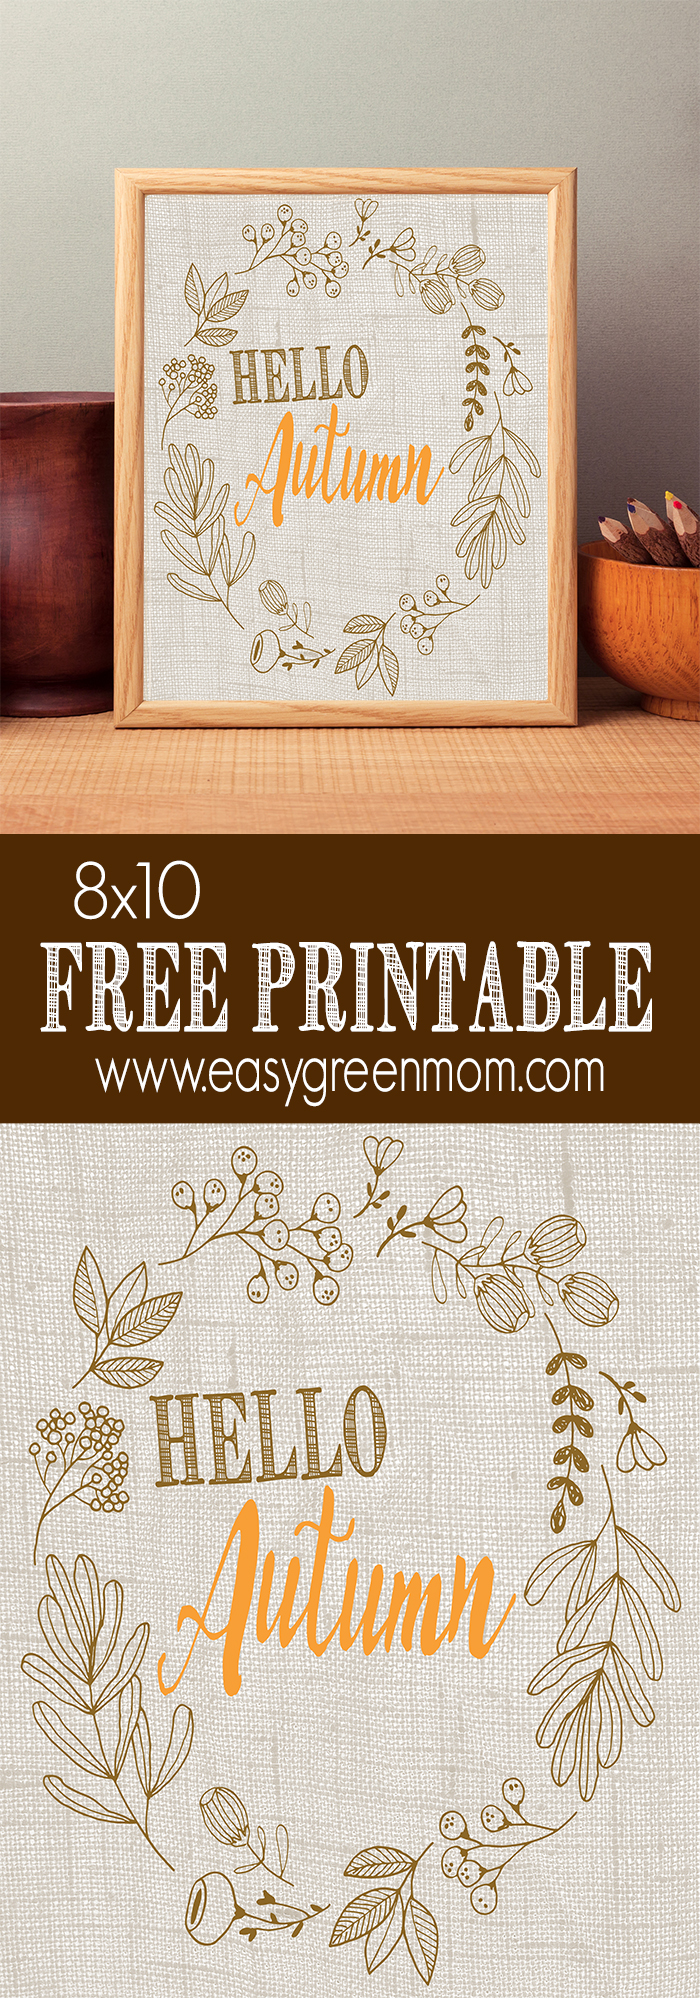 Hello Autumn Free Printable from rays of bliss